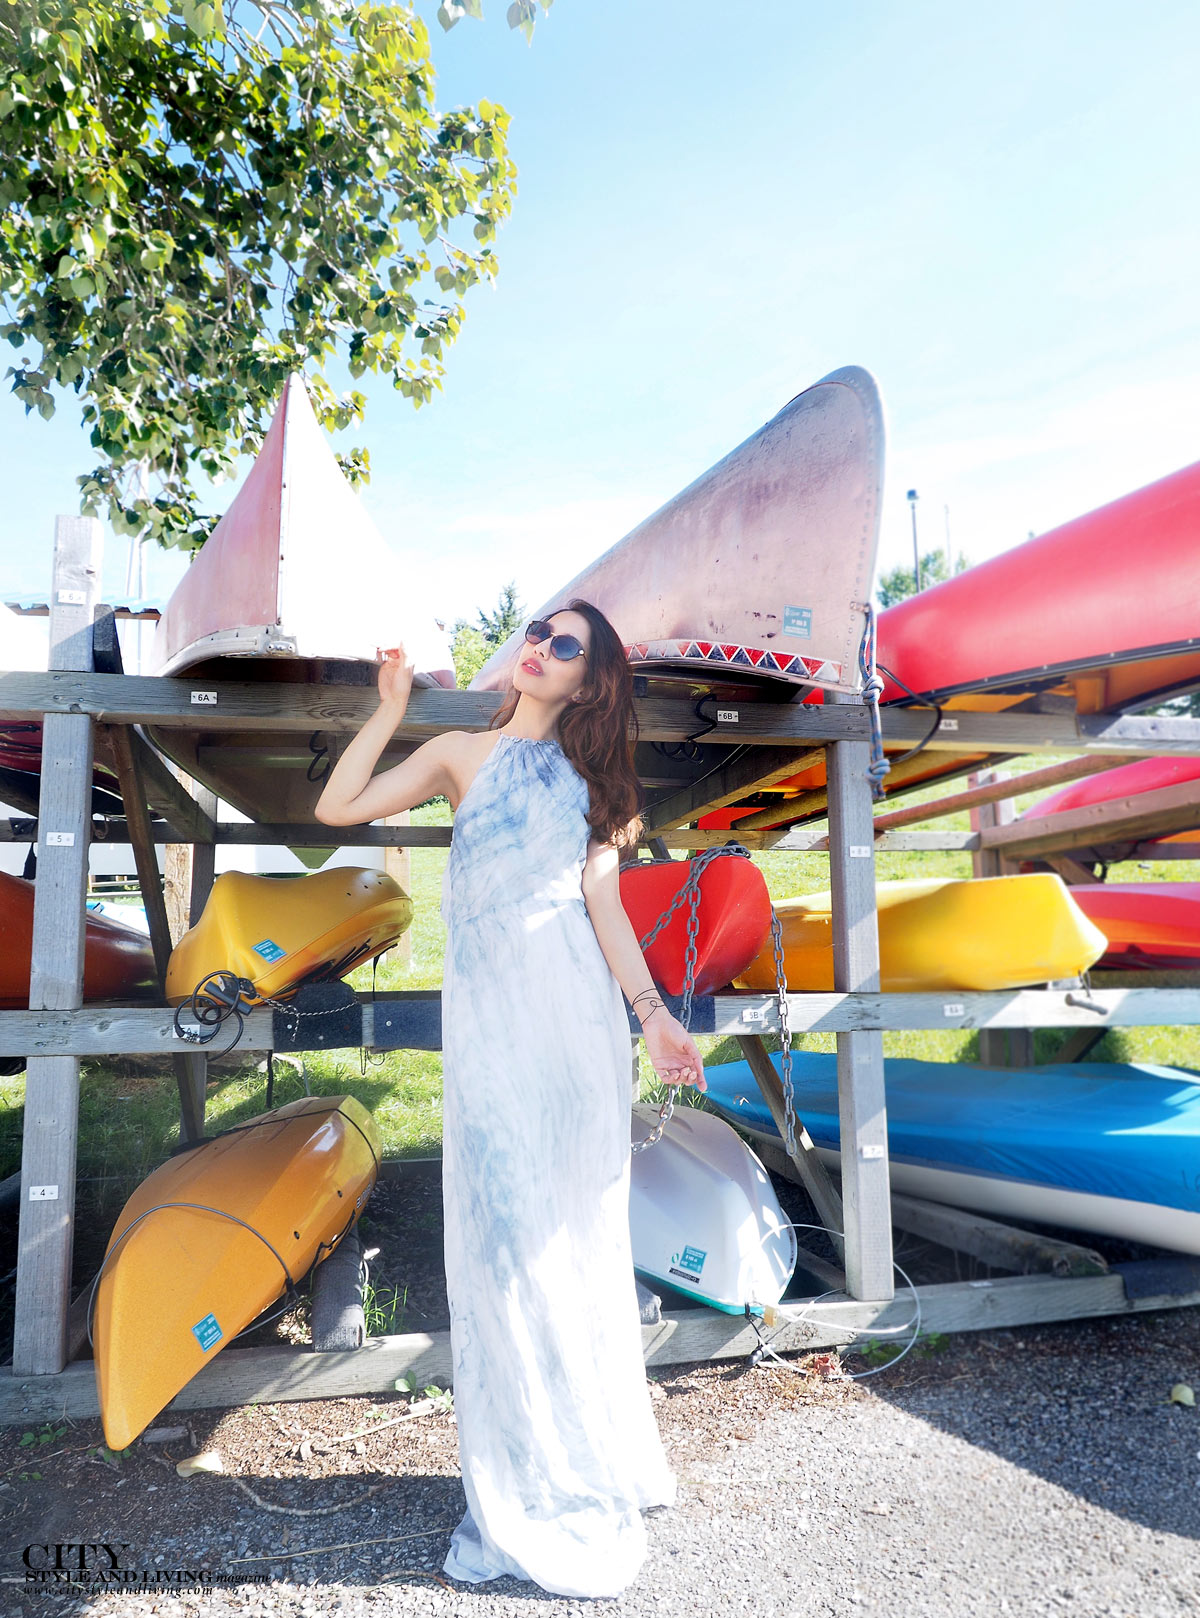 The Editors Notebook calgary fashion blogger wearing a maxi dress at glenmore resevoir canoes